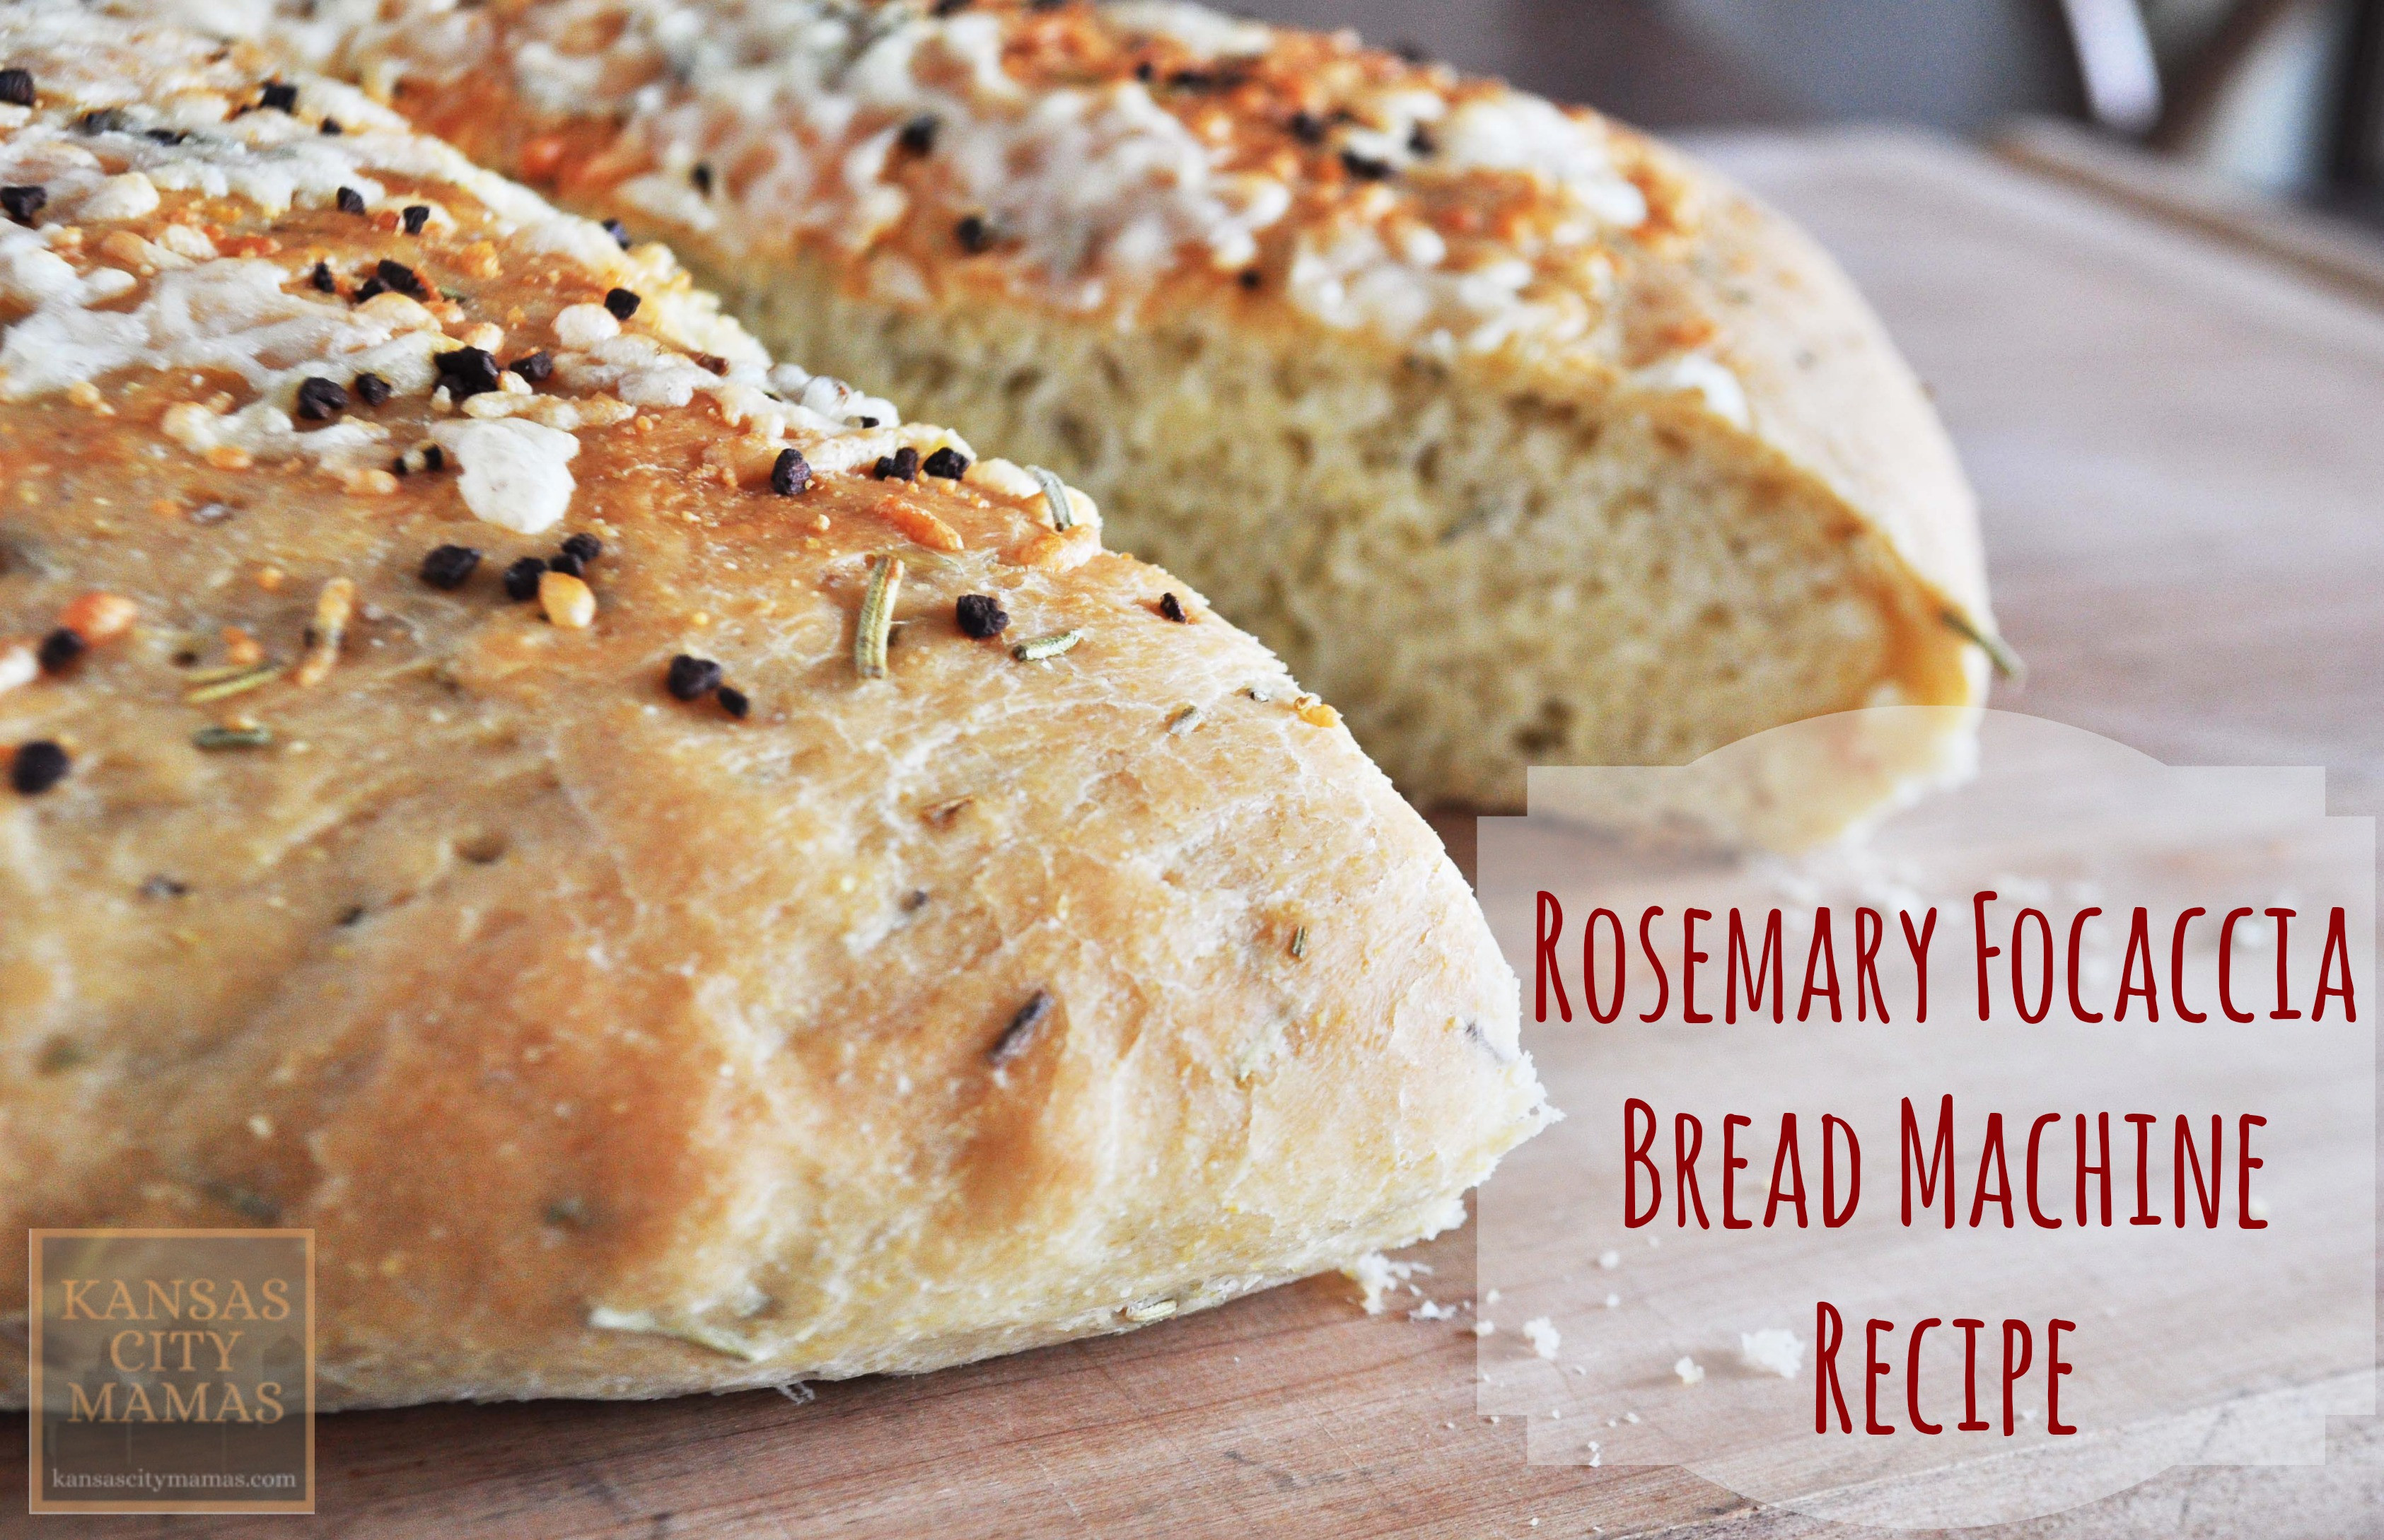 Bread Maker Machine Recipes  Rosemary Focaccia Bread Machine Recipe